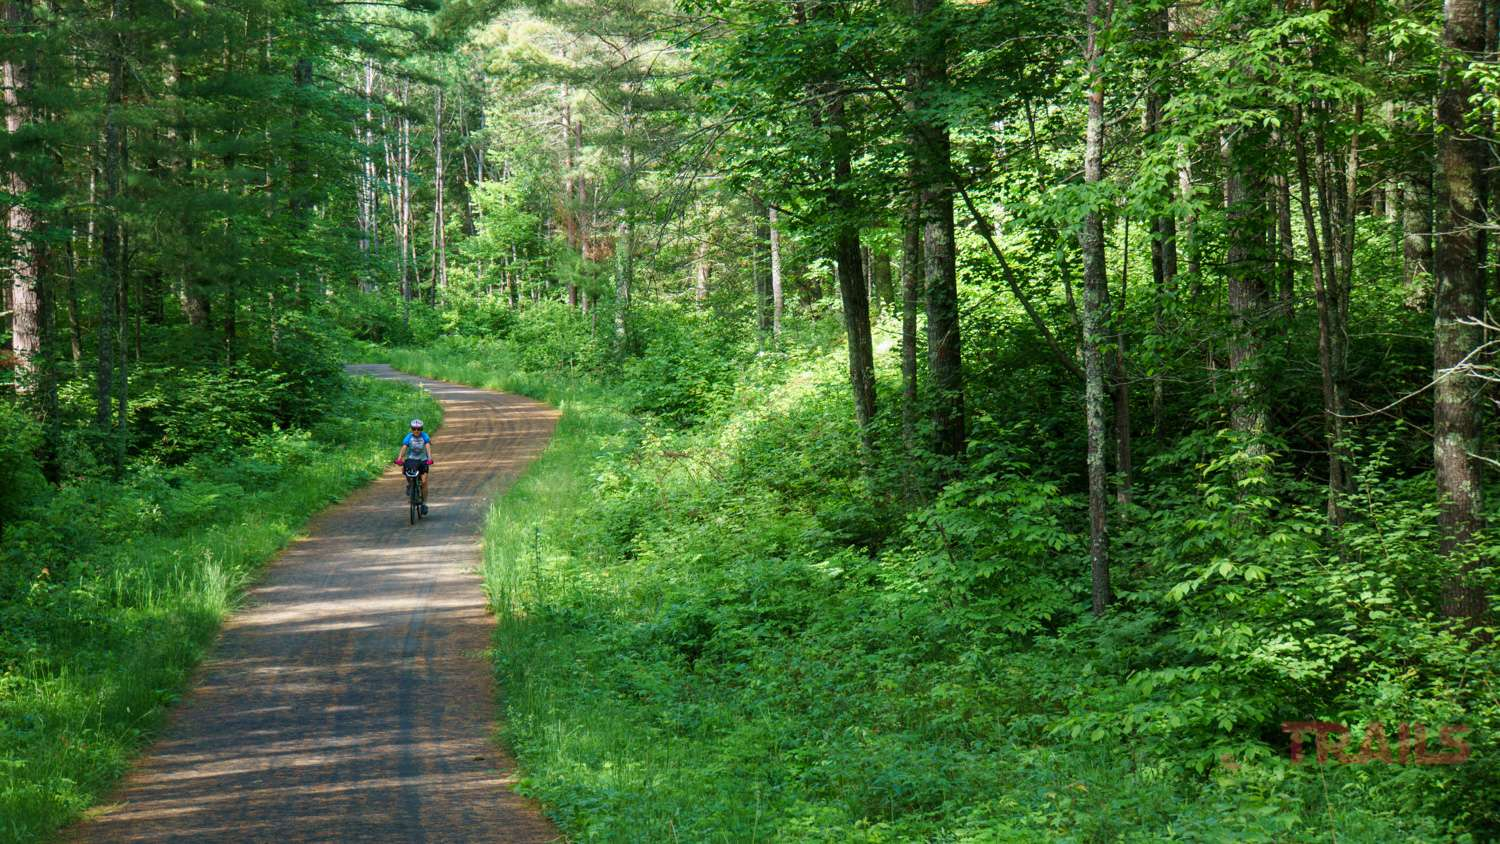 A woman rides a bike on a trail through the forest